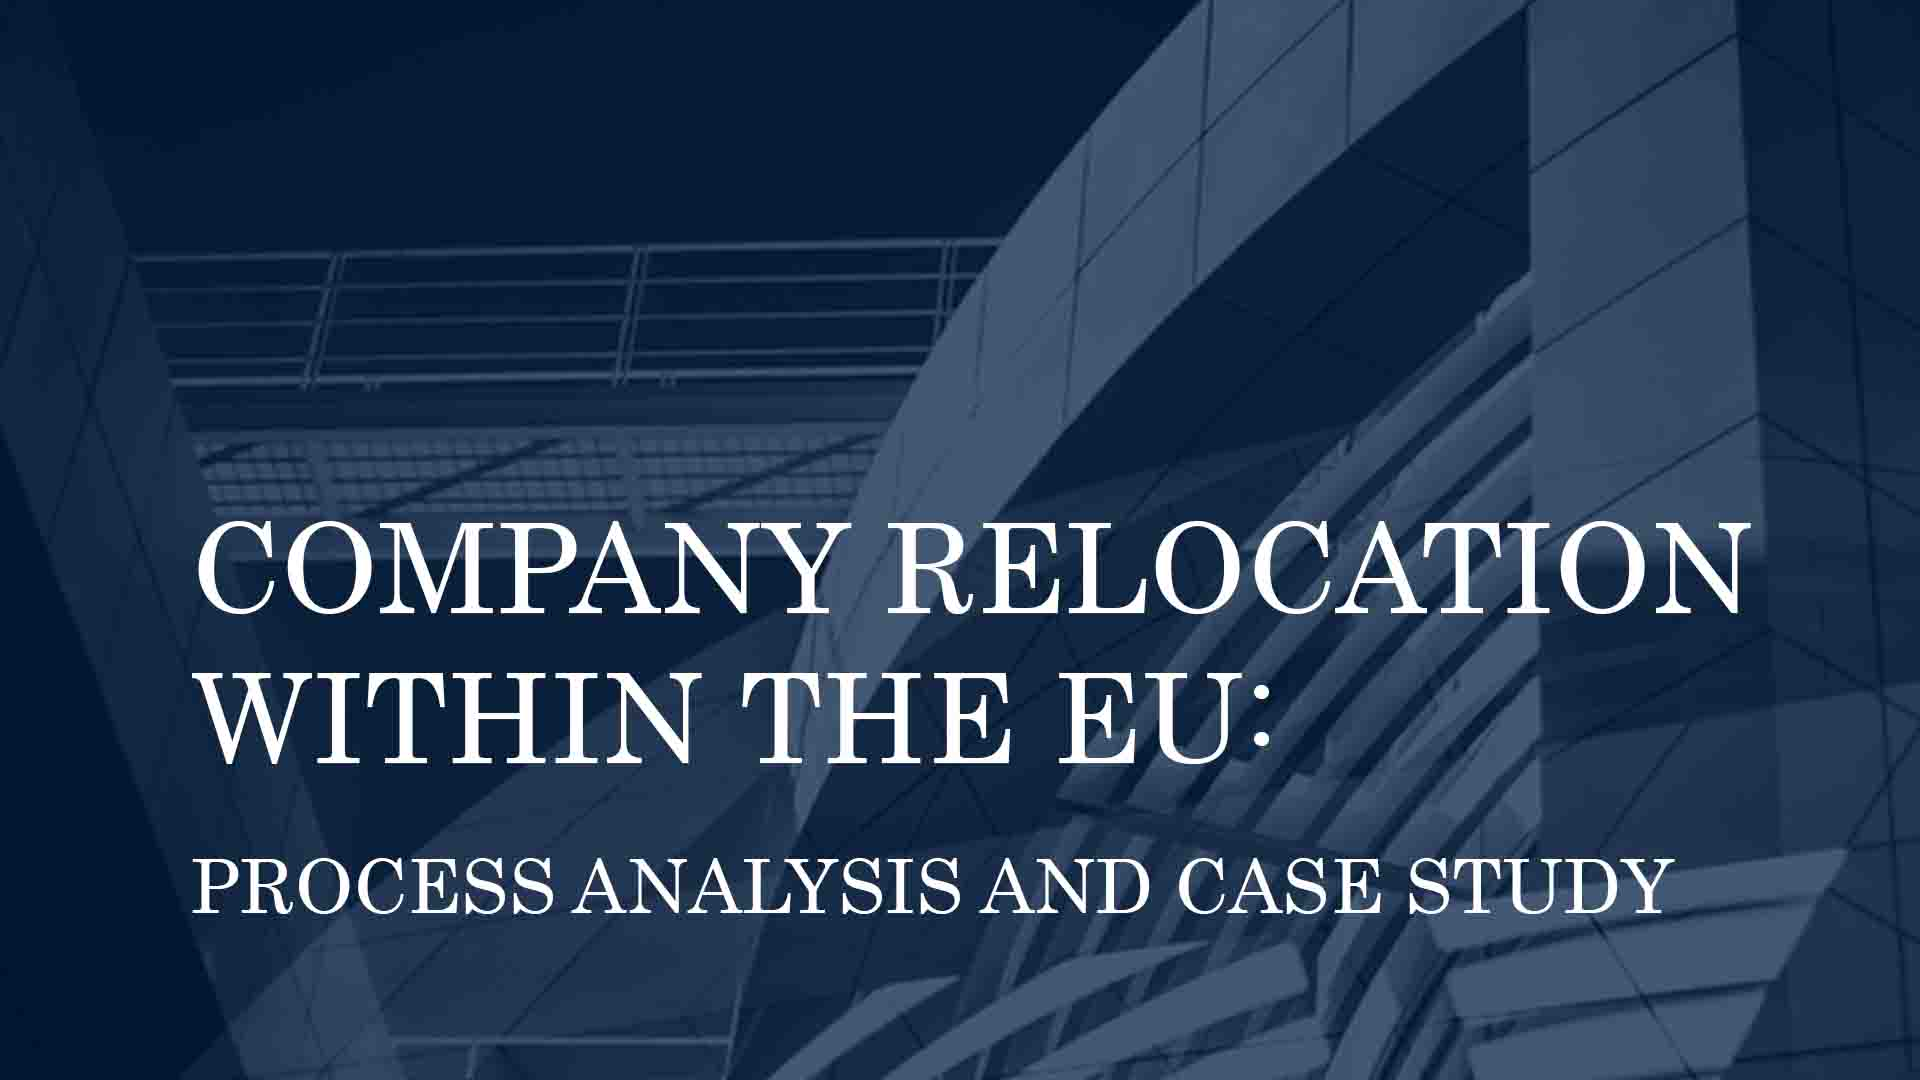 COMPANY RELOCATION WITHIN THE EU: PROCESS ANALYSIS AND CASE STUDY